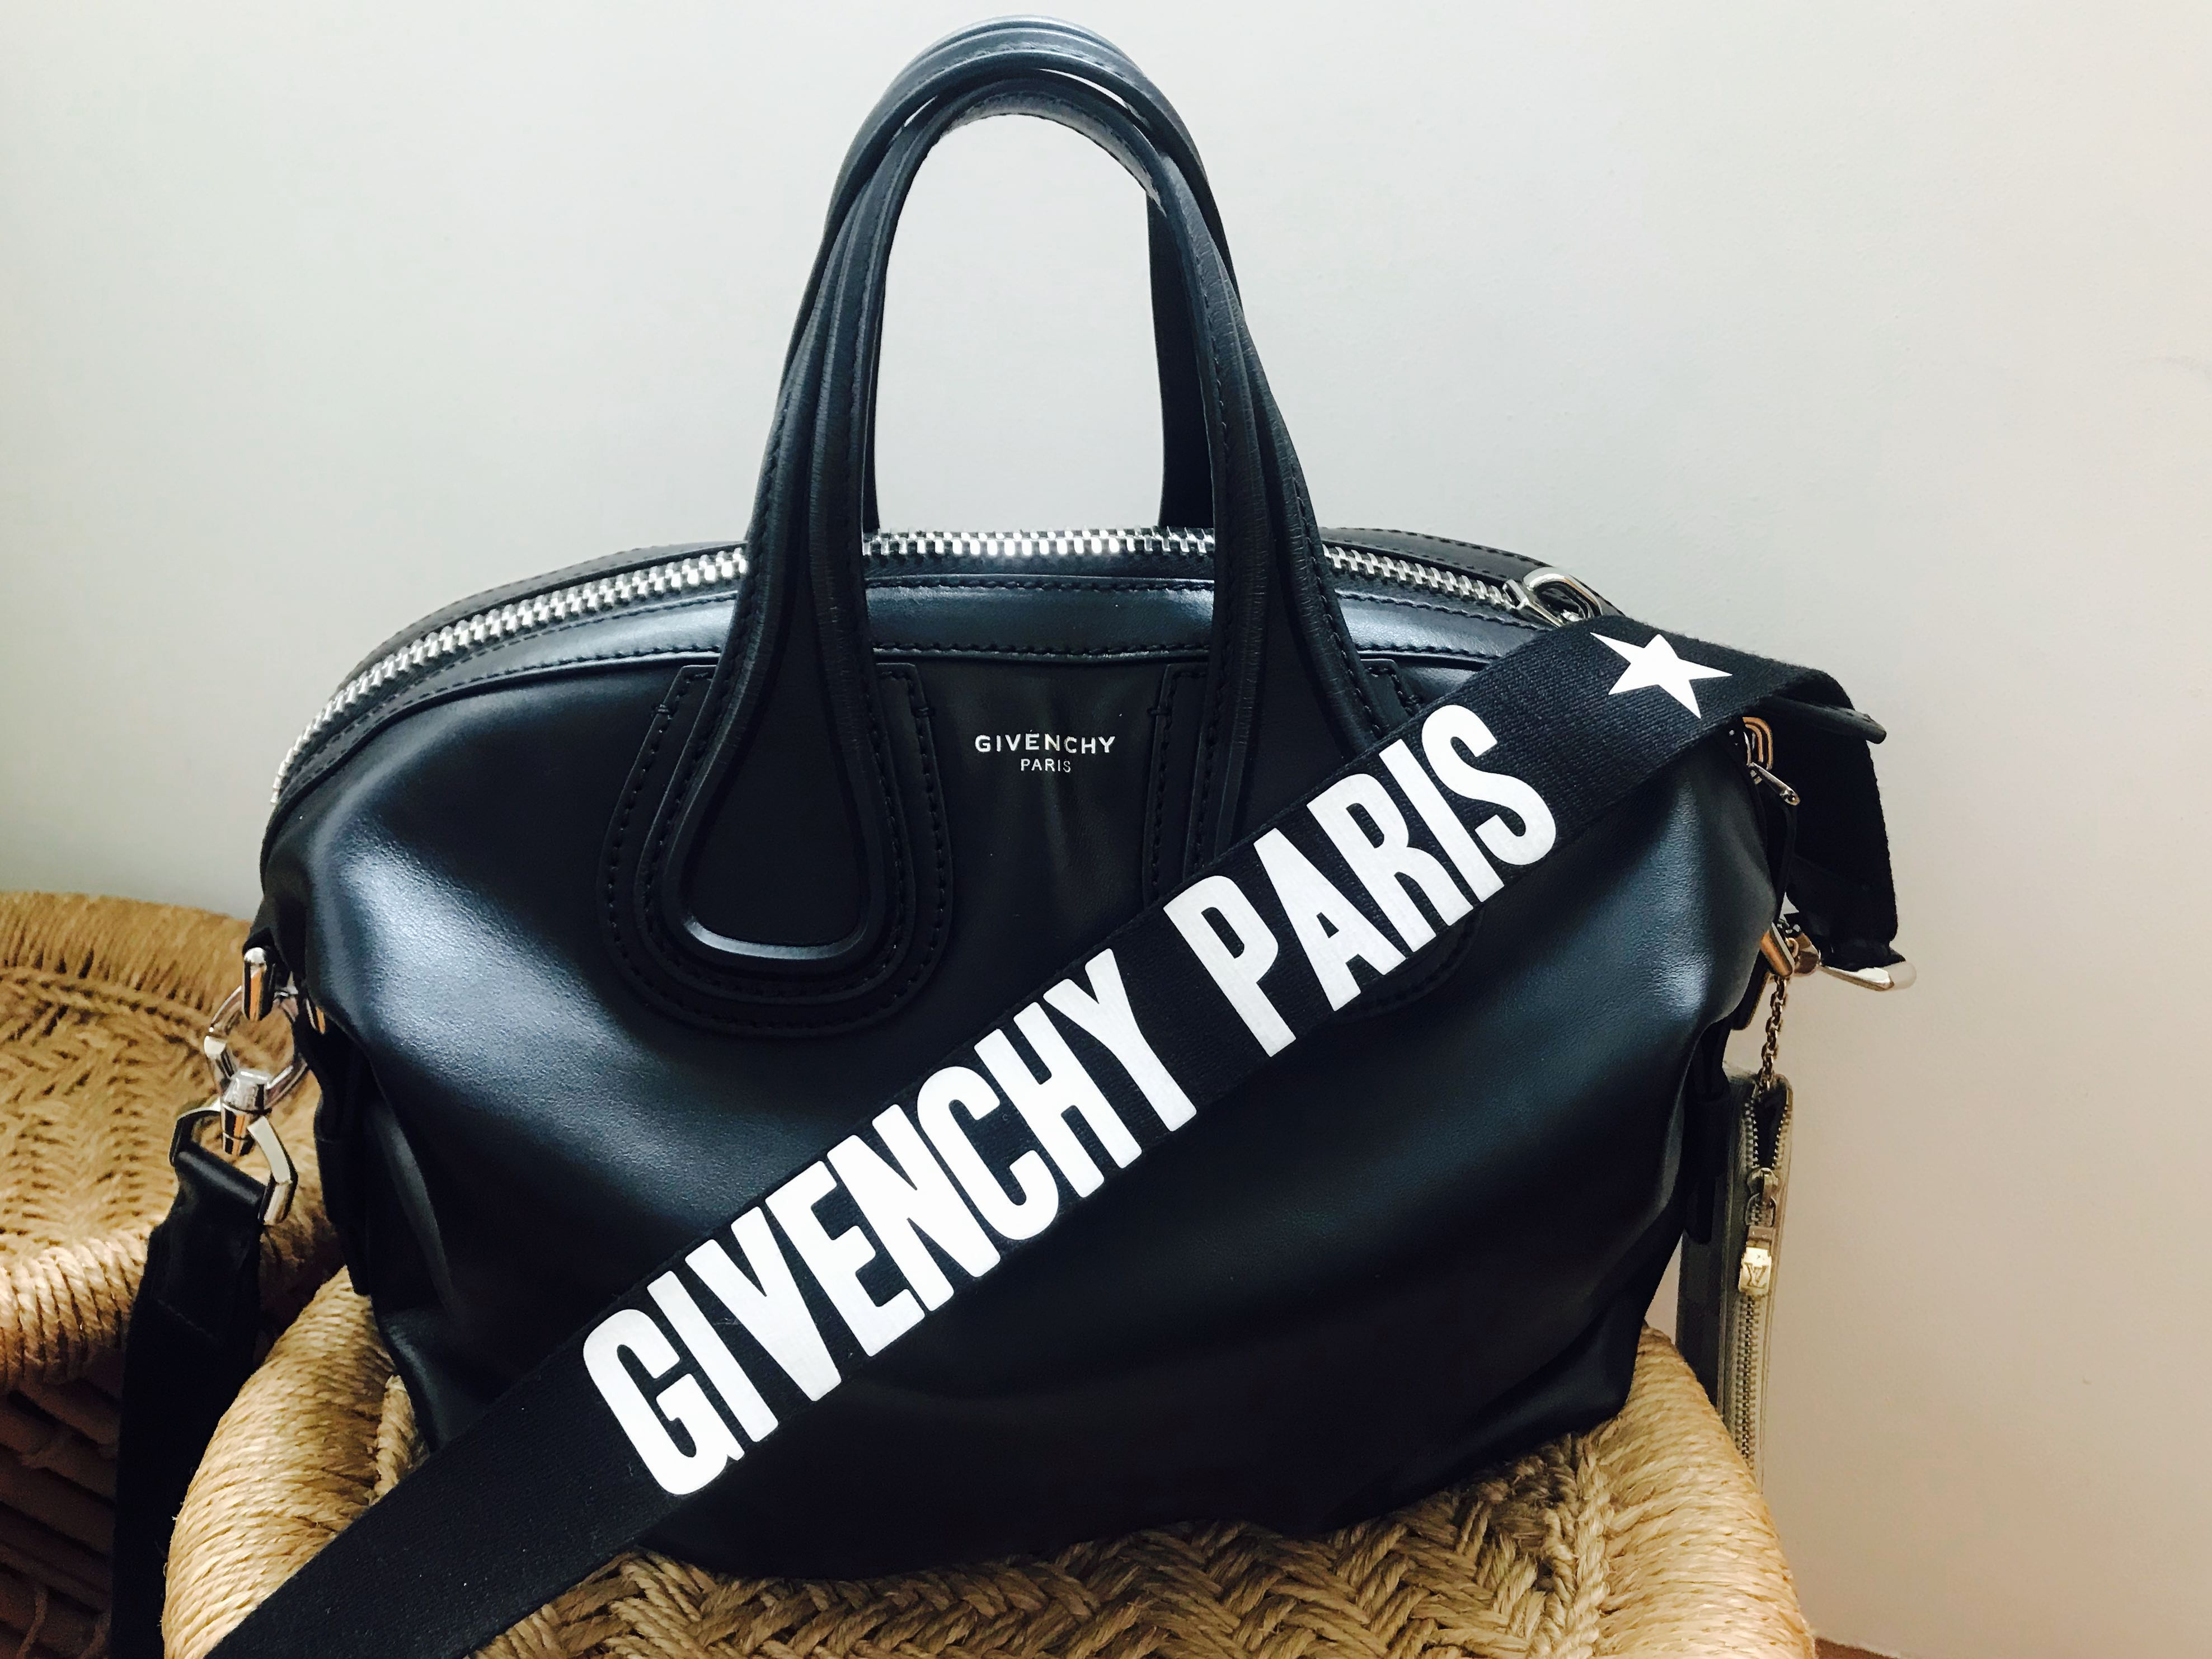 642ad7f9db8 ☑️Authentic GIVENCHY Nightingale Black Small Limited Ed. (Logo Strap),  Luxury, Bags & Wallets, Handbags on Carousell